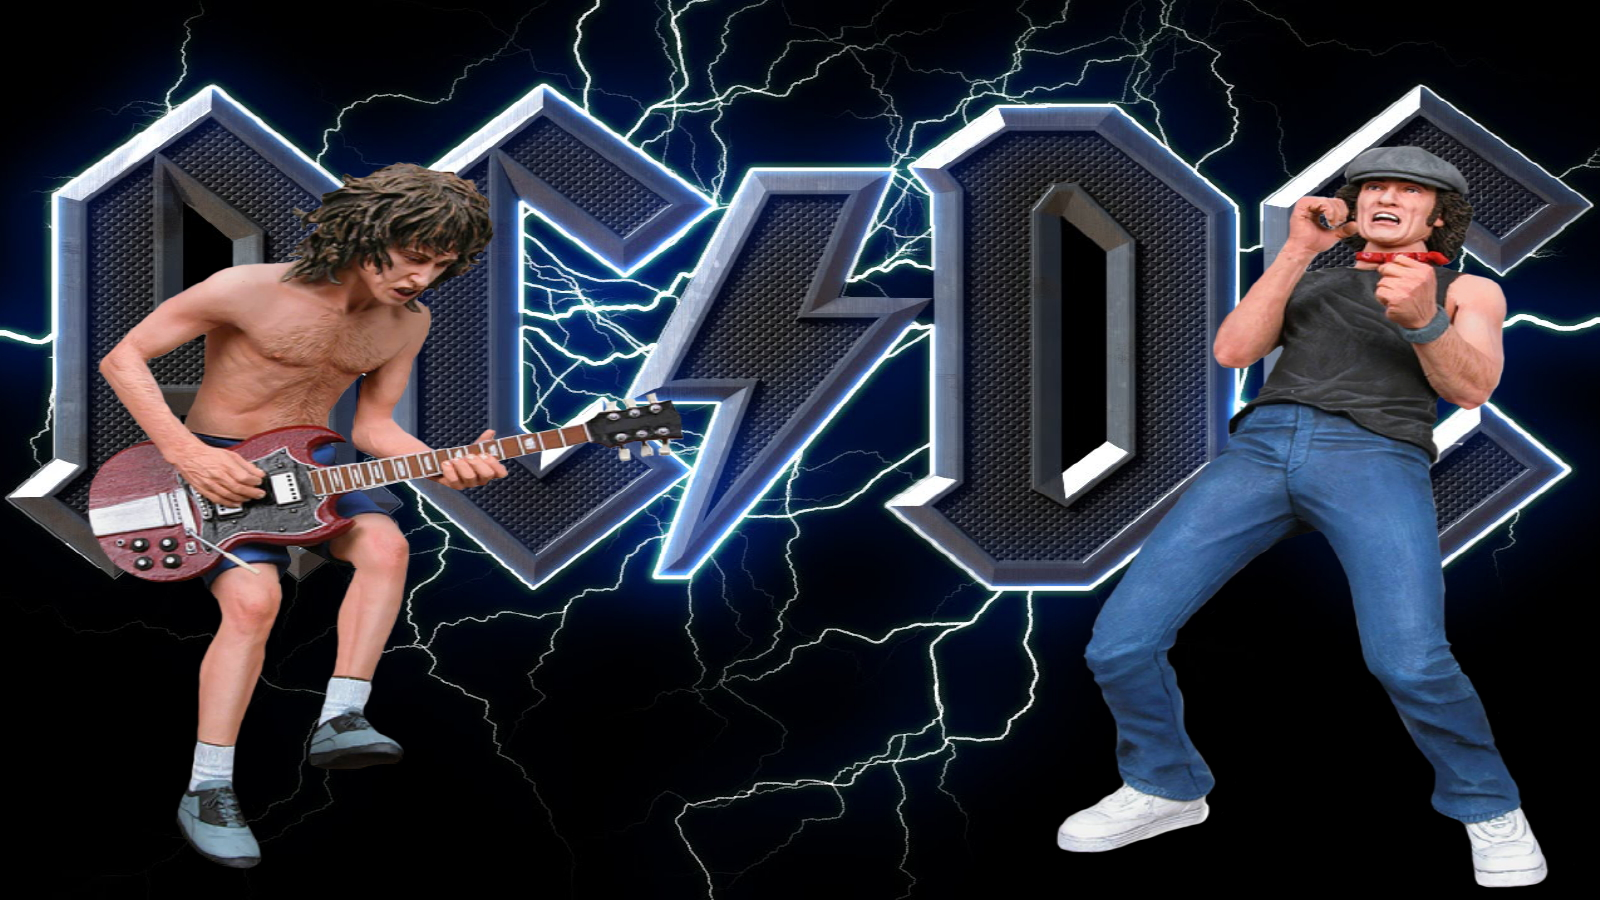 Ac dc wallpaper and background image 1600x900 id 277143 - Ac dc wallpaper for android ...